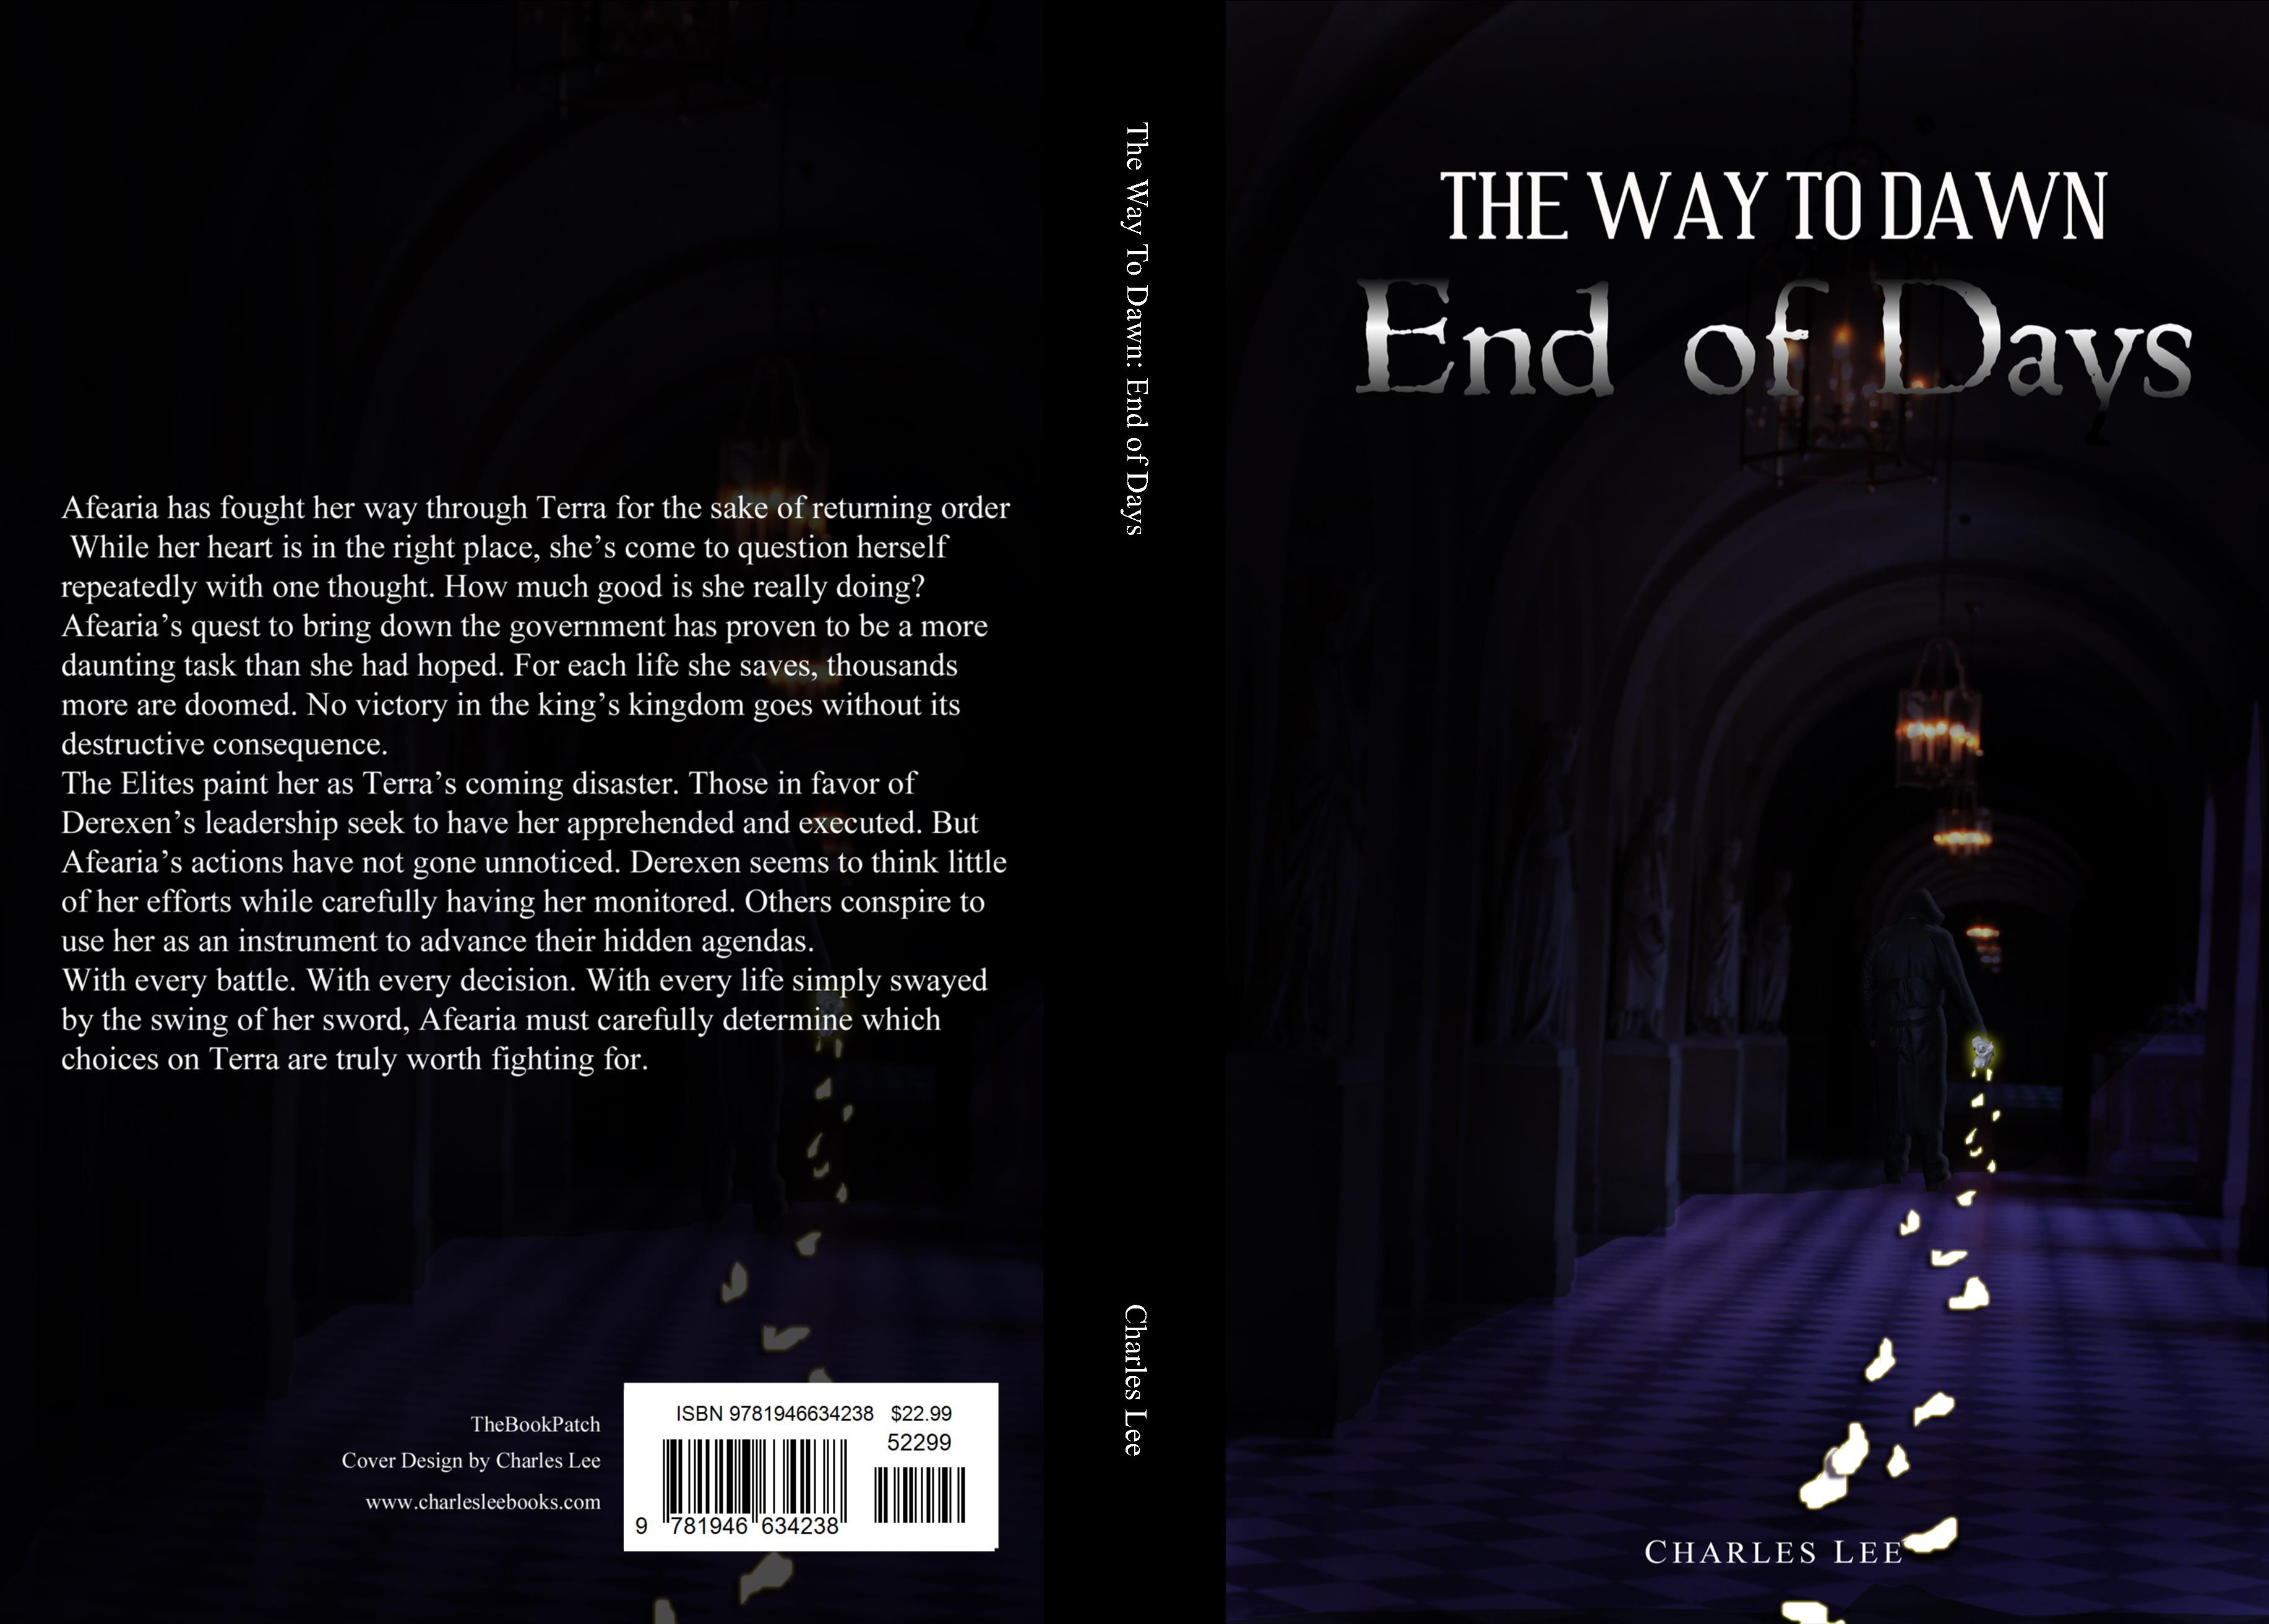 The Way To Dawn: End of Days cover image